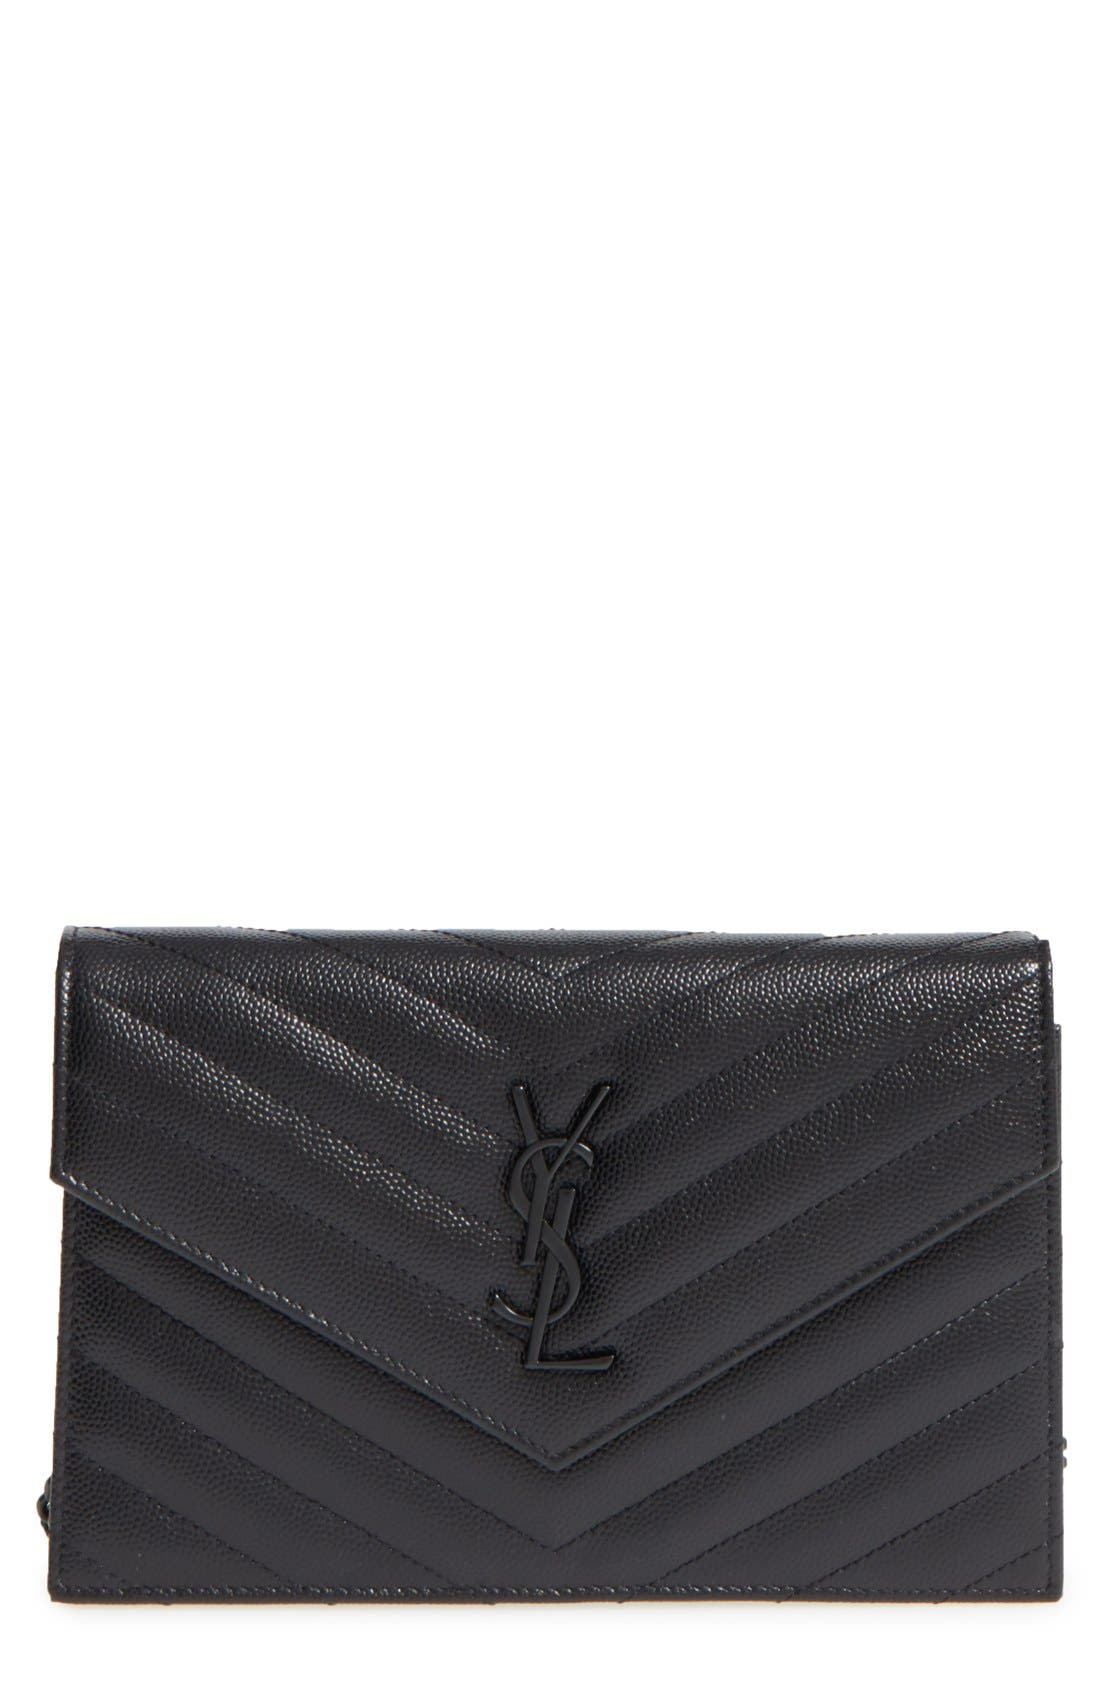 SAINT LAURENT Quilted Leather Wallet on a Chain, Main, color, NERO